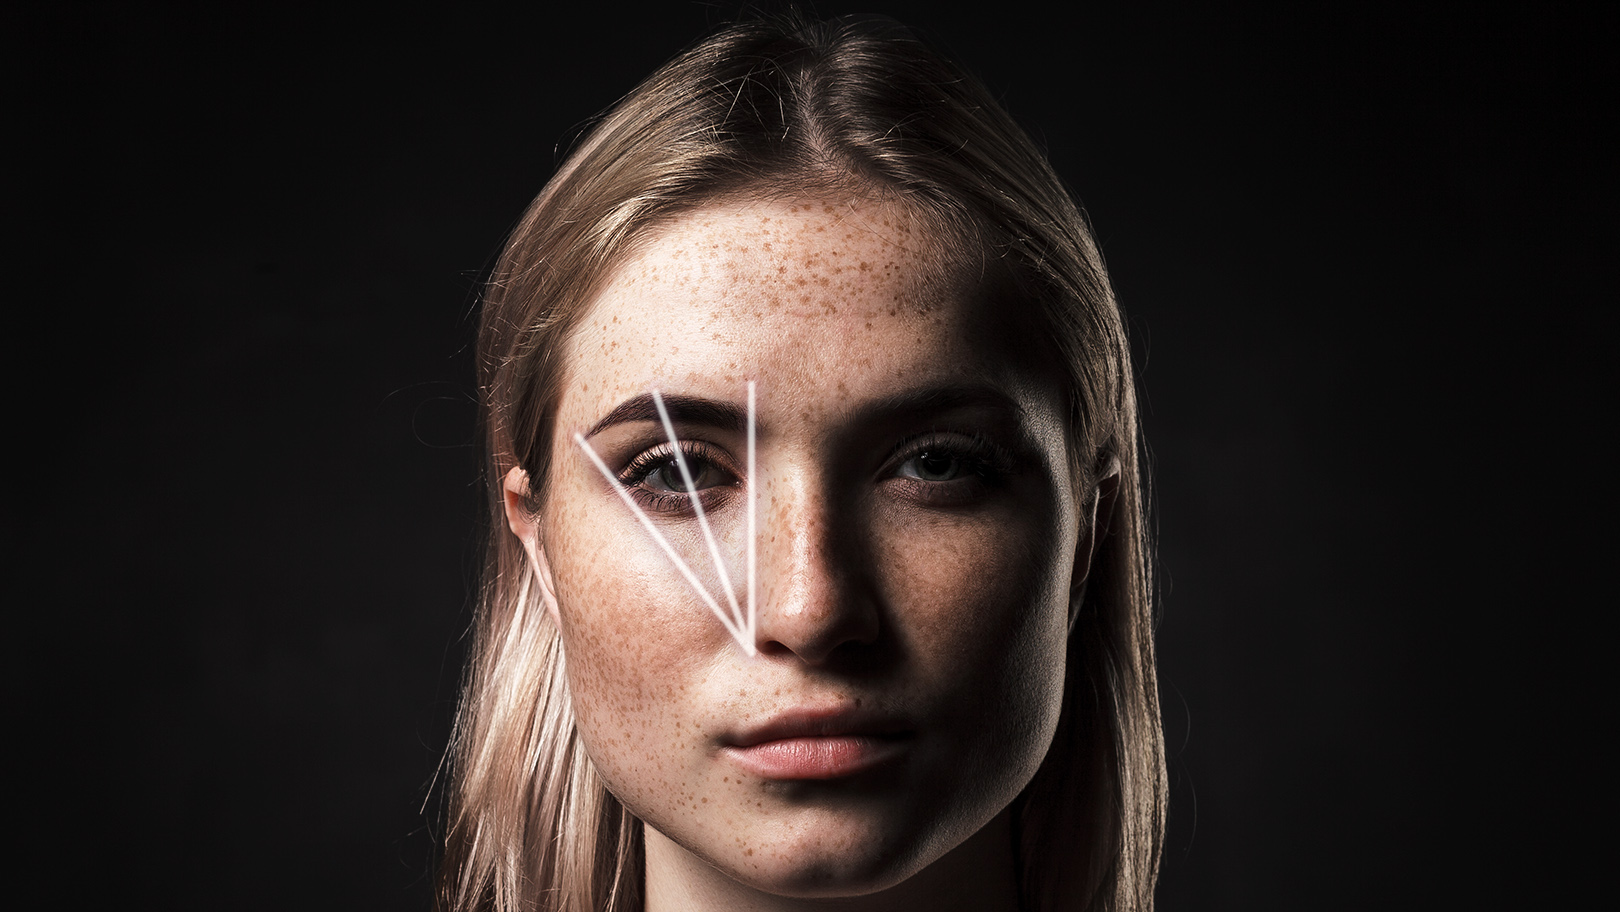 a woman's face with lines showing her face structure